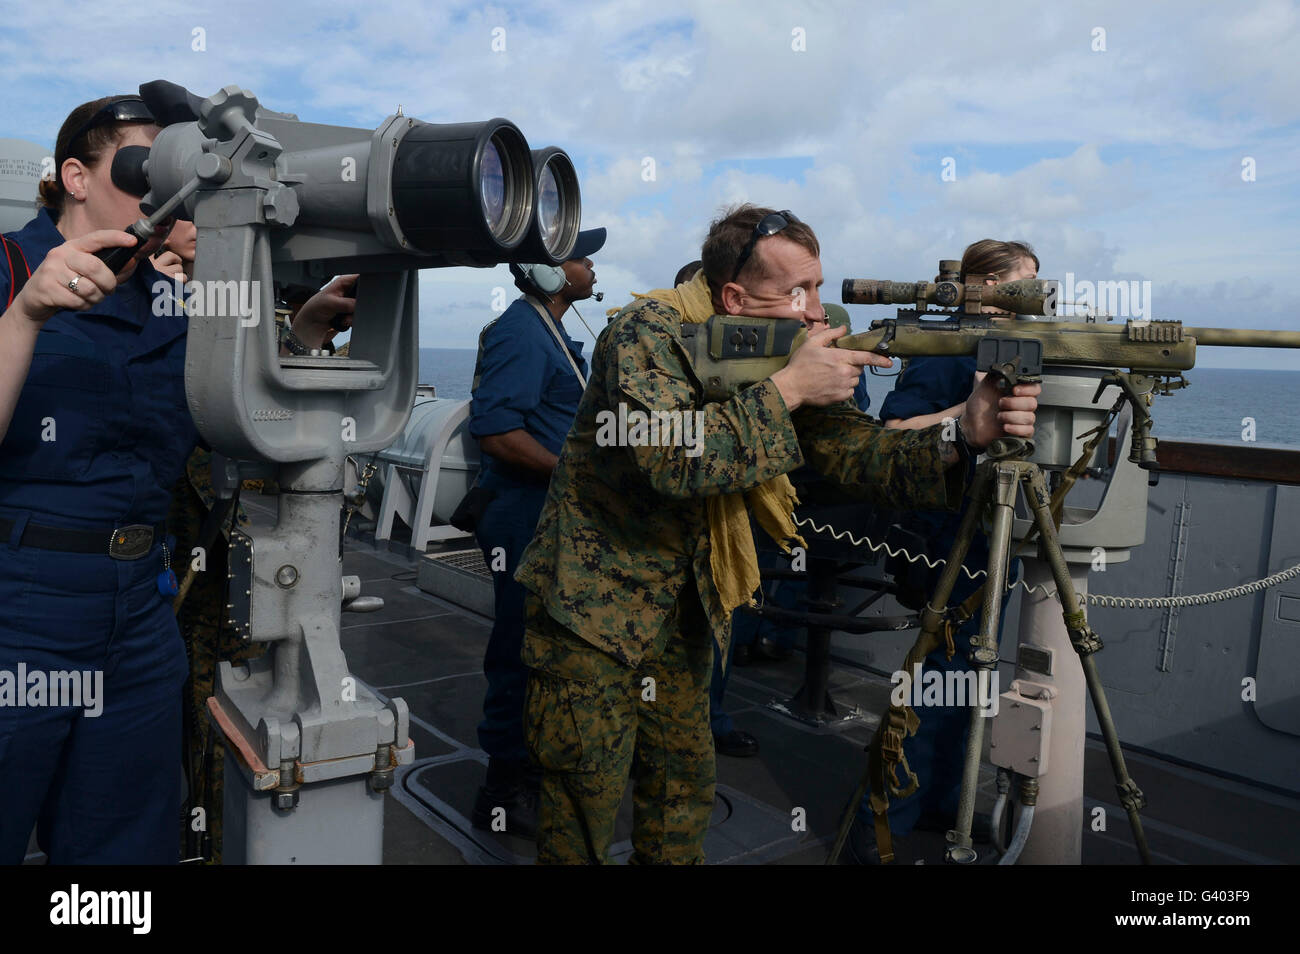 Sailors and Marines participate in a visit, board, search and seizure. - Stock Image